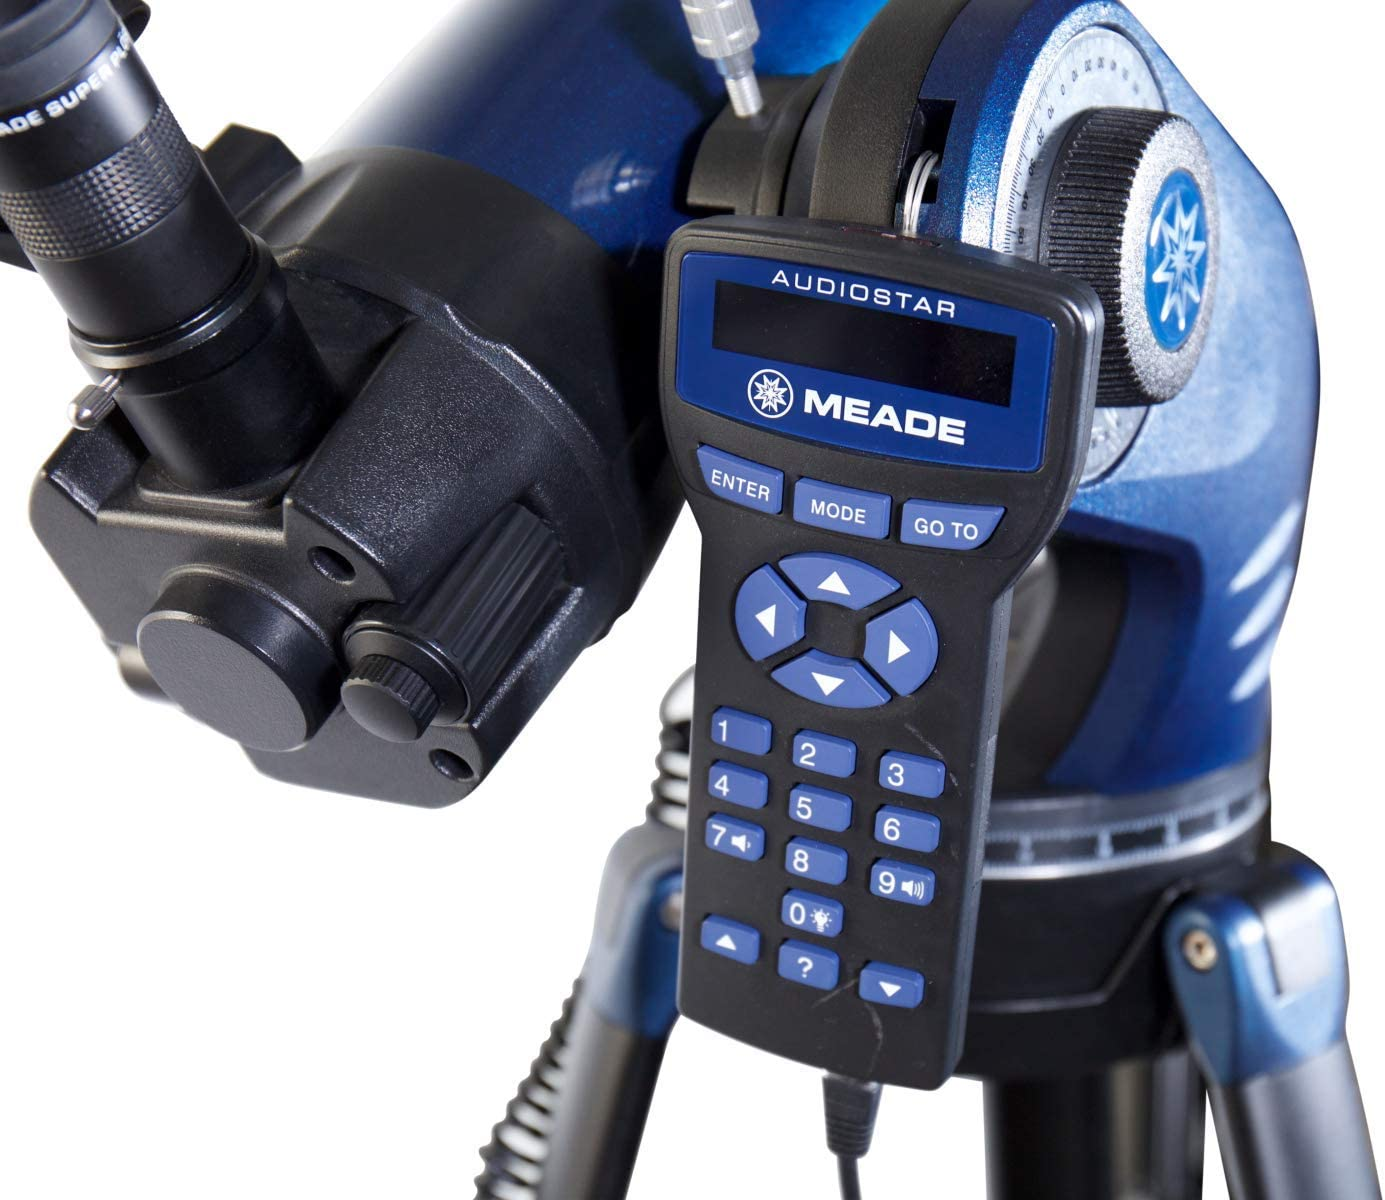 Black Meade Instruments 218004 StarNavigator NG 130 Reflector Computerized Talking Telescope with Accessories